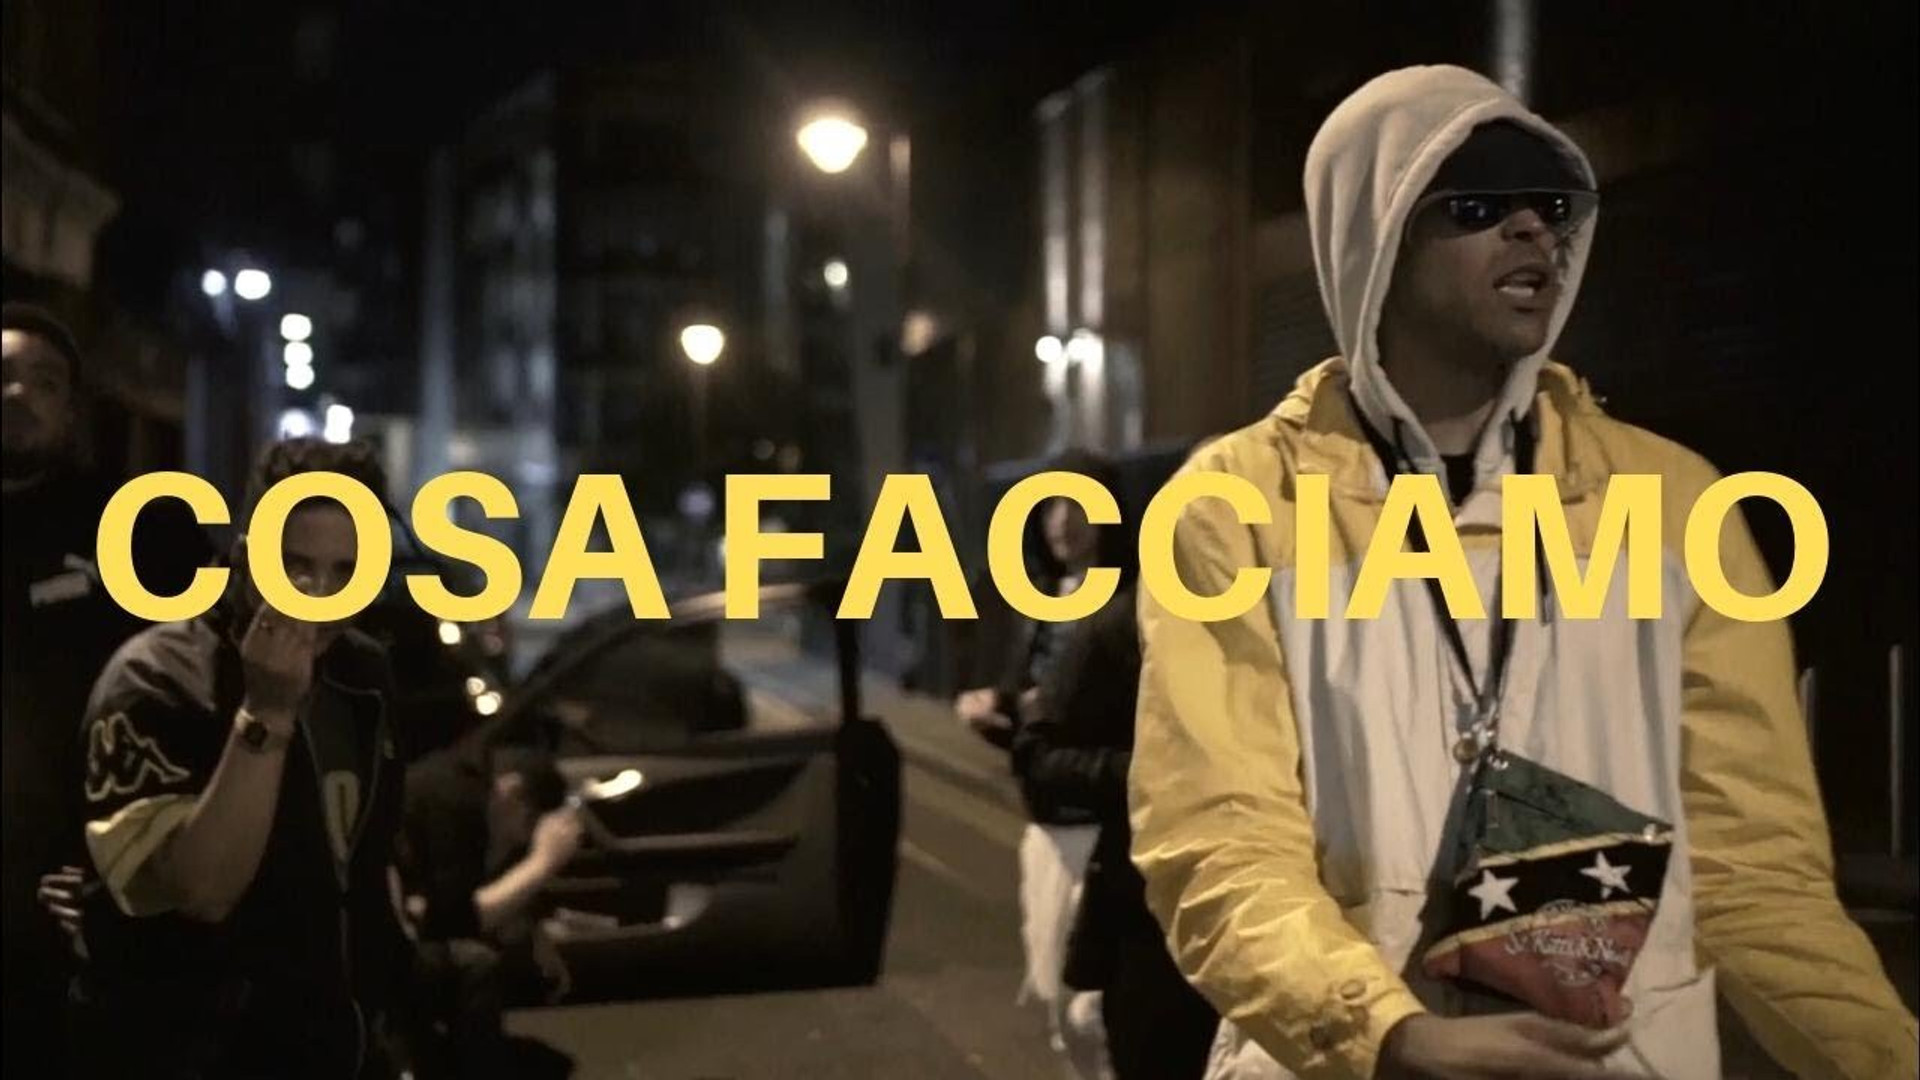 Lefty - Cosa Facciamo ft. P Solja | Official Video | Don't Flop Music